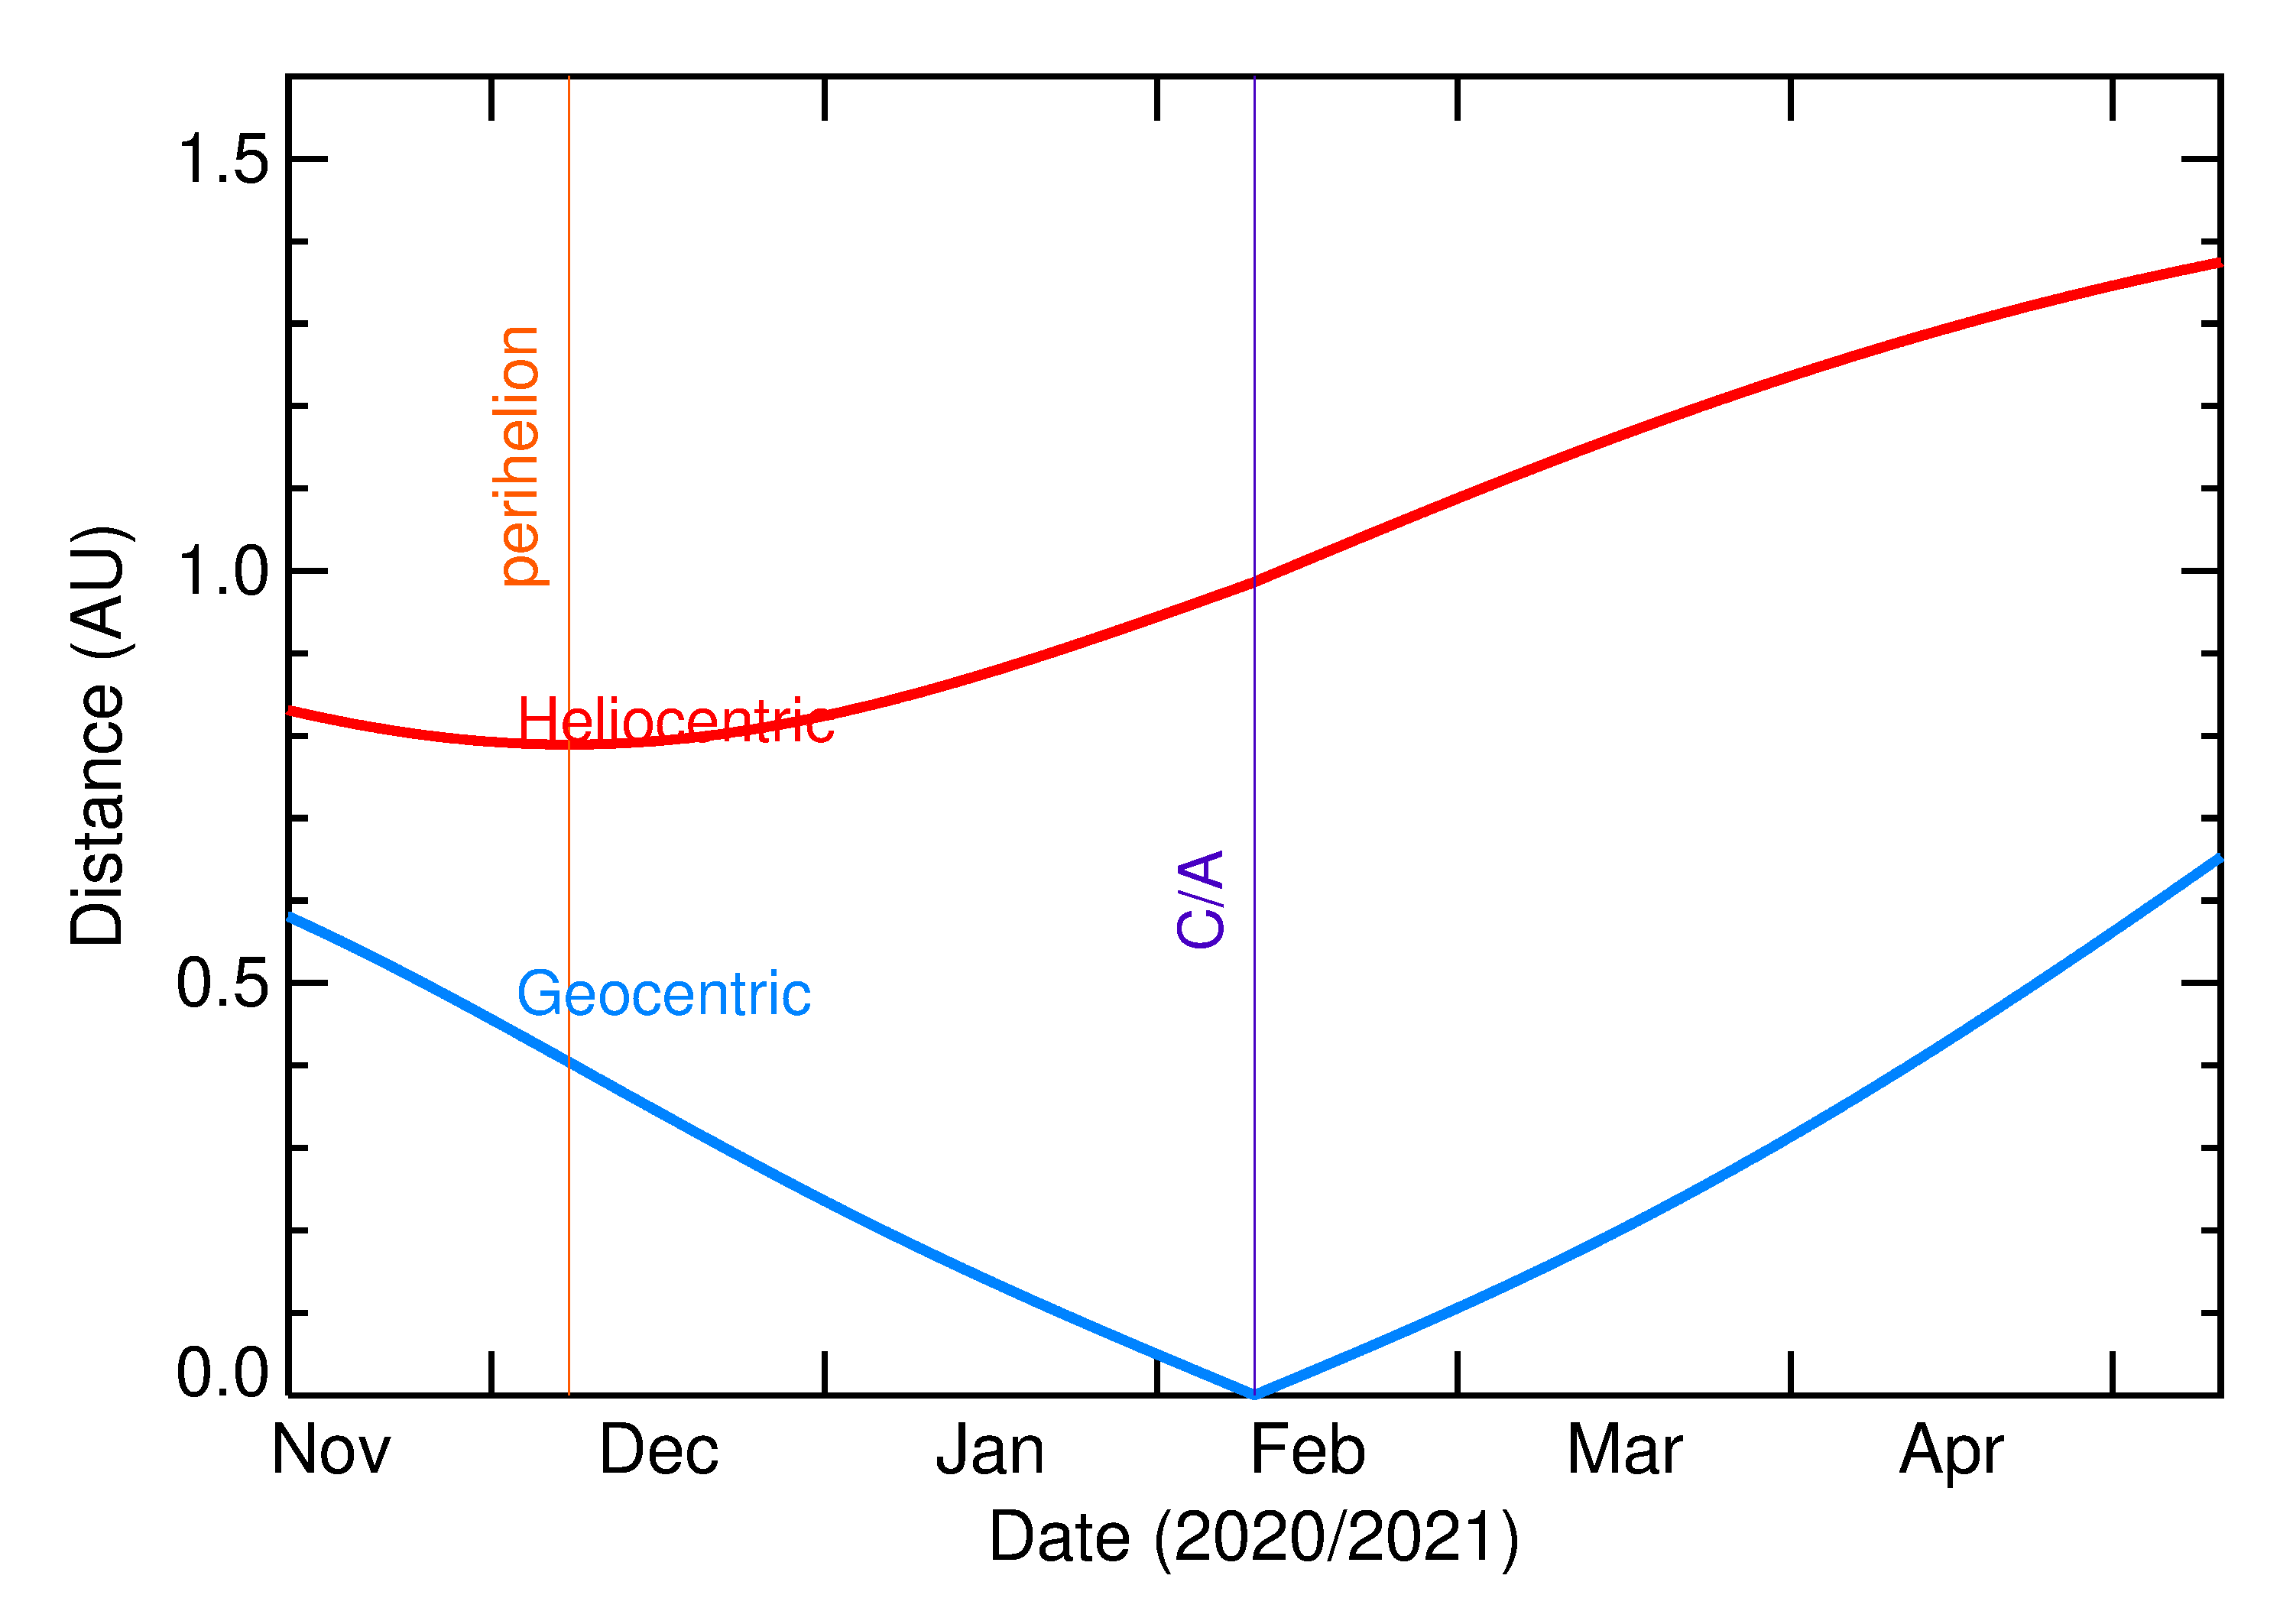 Heliocentric and Geocentric Distances of 2021 CZ3 in the months around closest approach